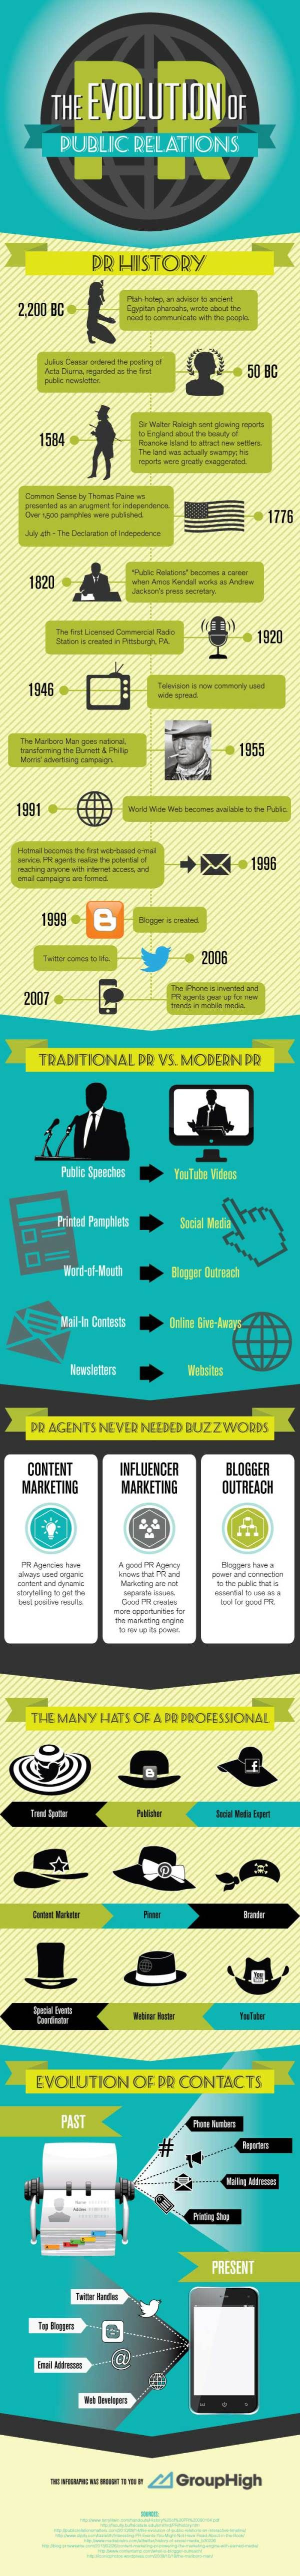 How public relations has changed